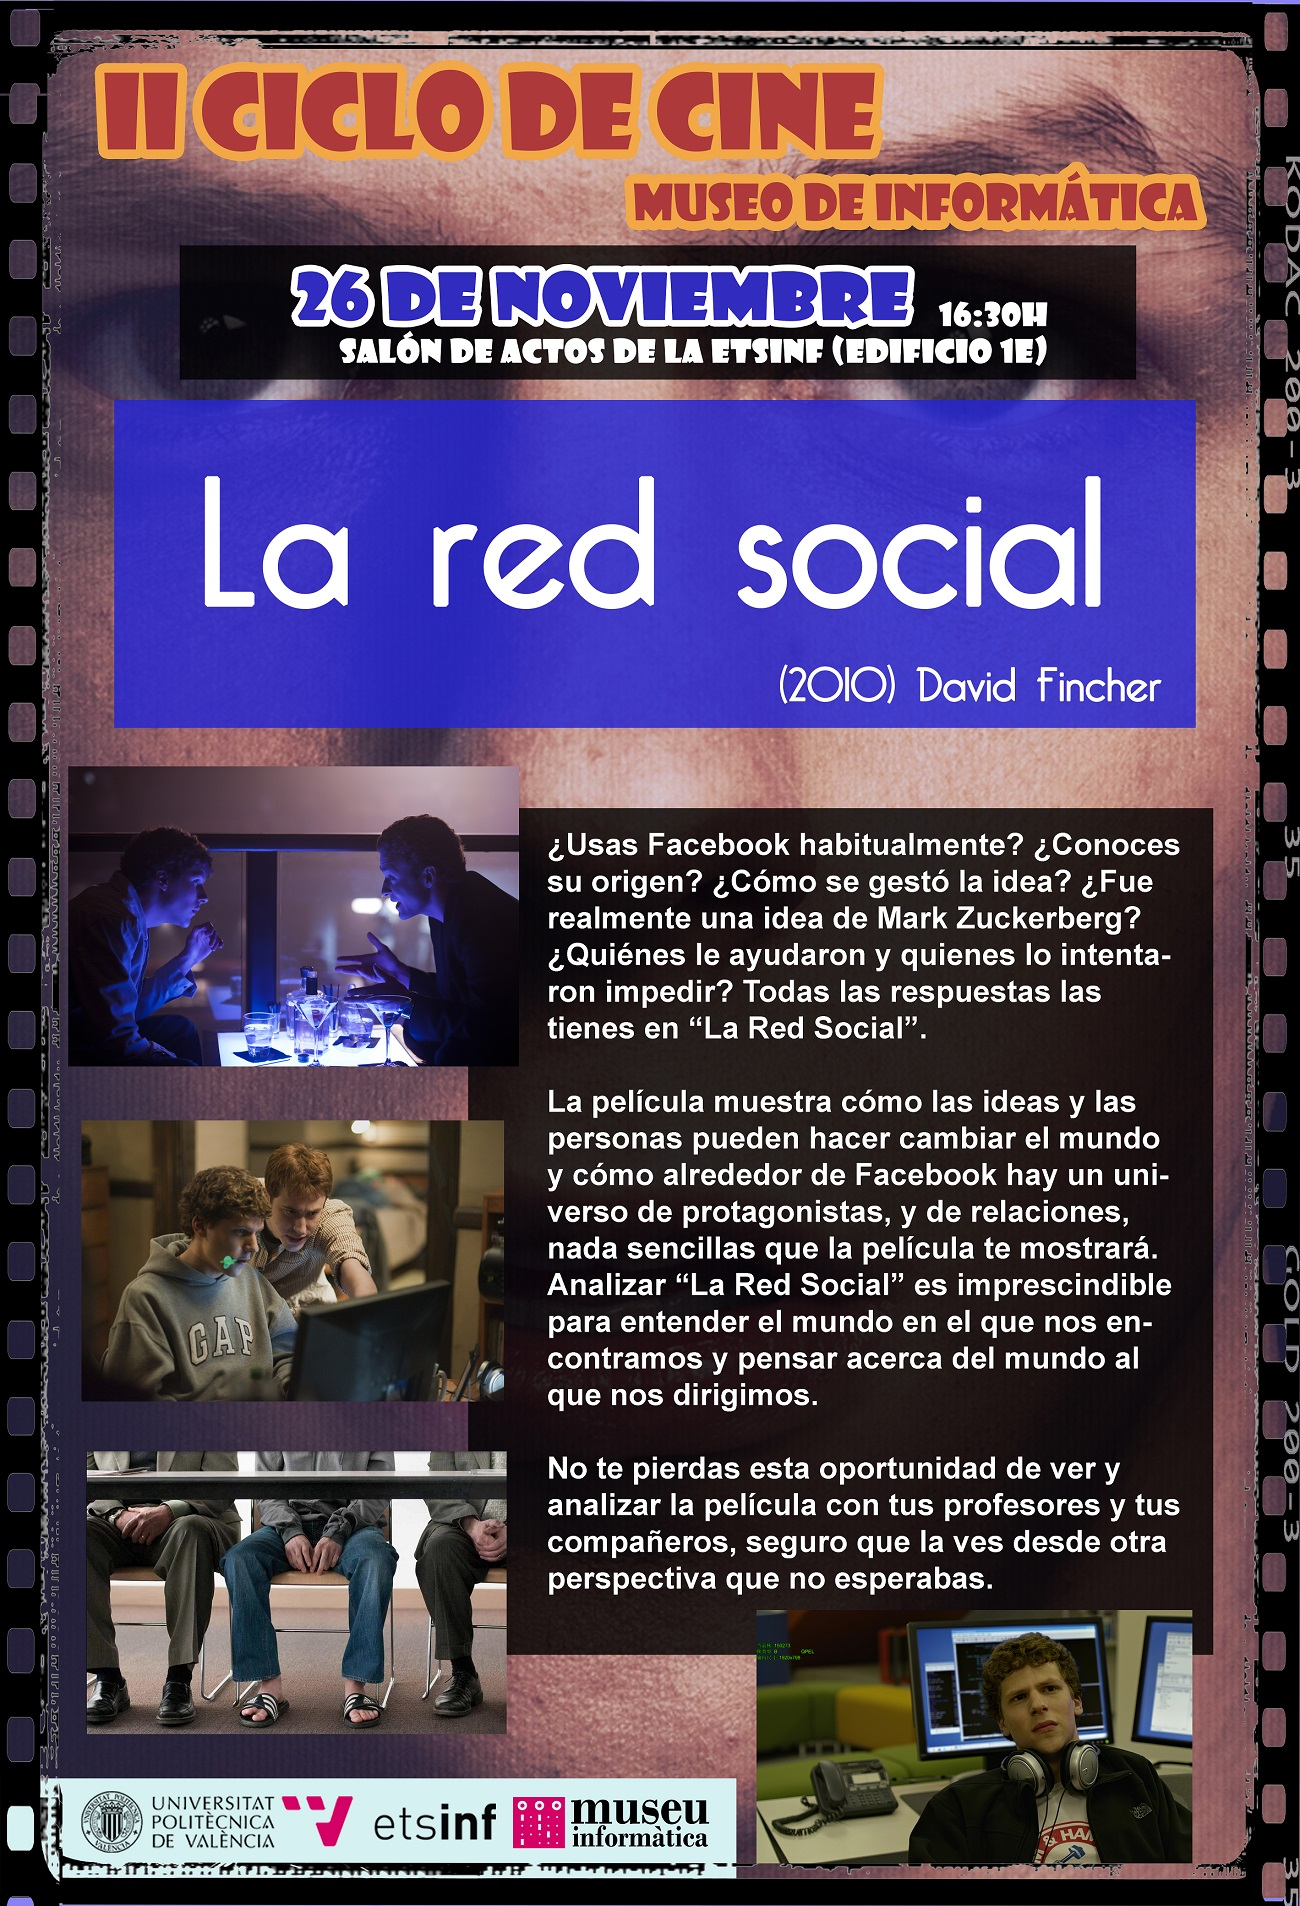 II Cicle de Cinema – La Red Social